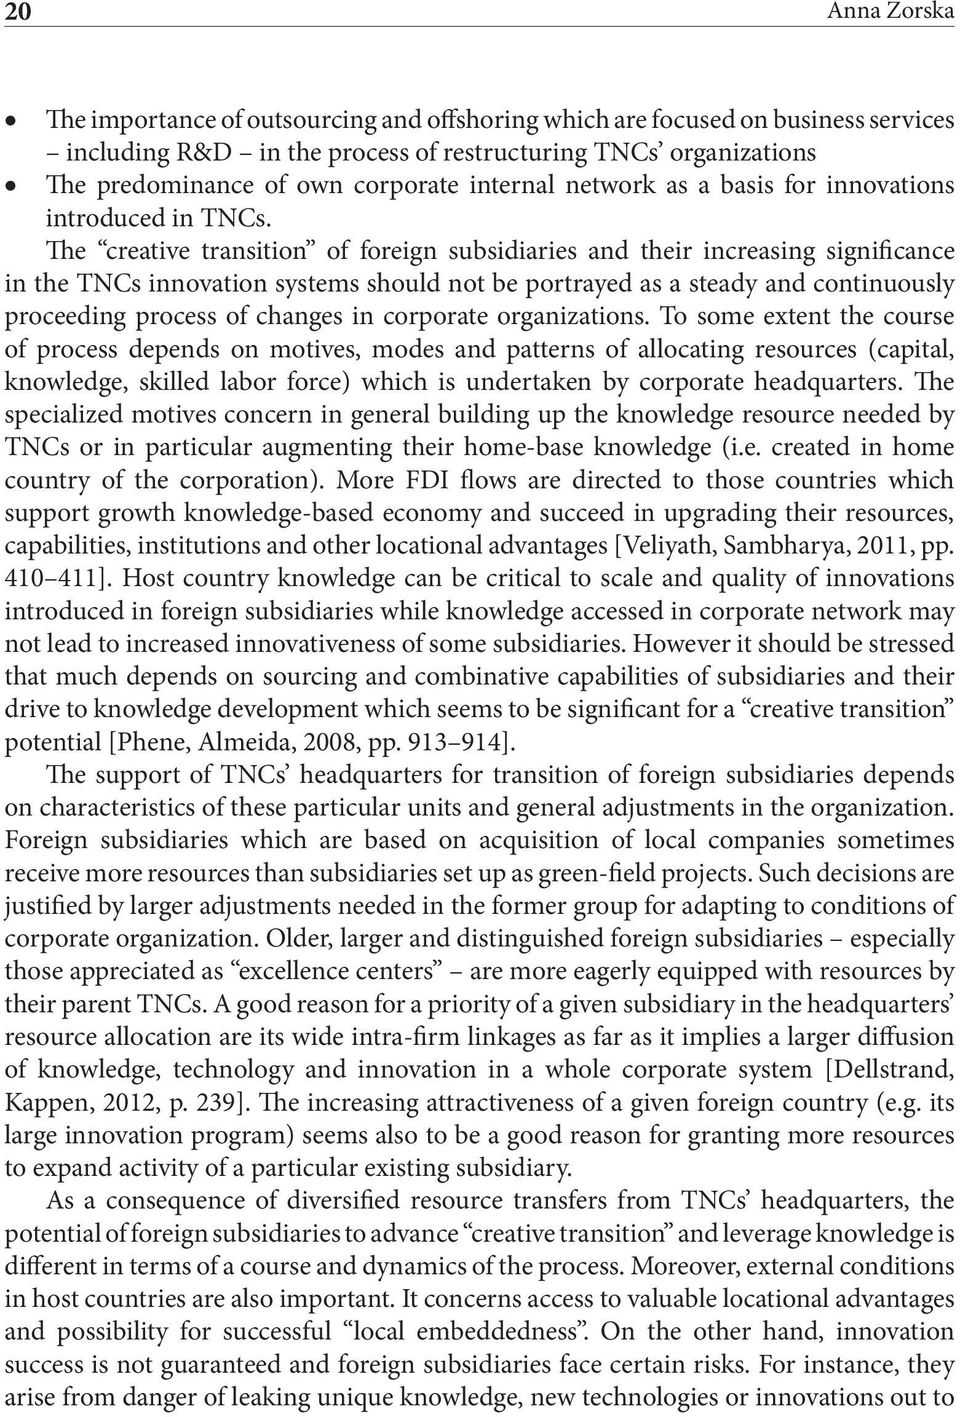 The creative transition of foreign subsidiaries and their increasing significance in the TNCs innovation systems should not be portrayed as a steady and continuously proceeding process of changes in